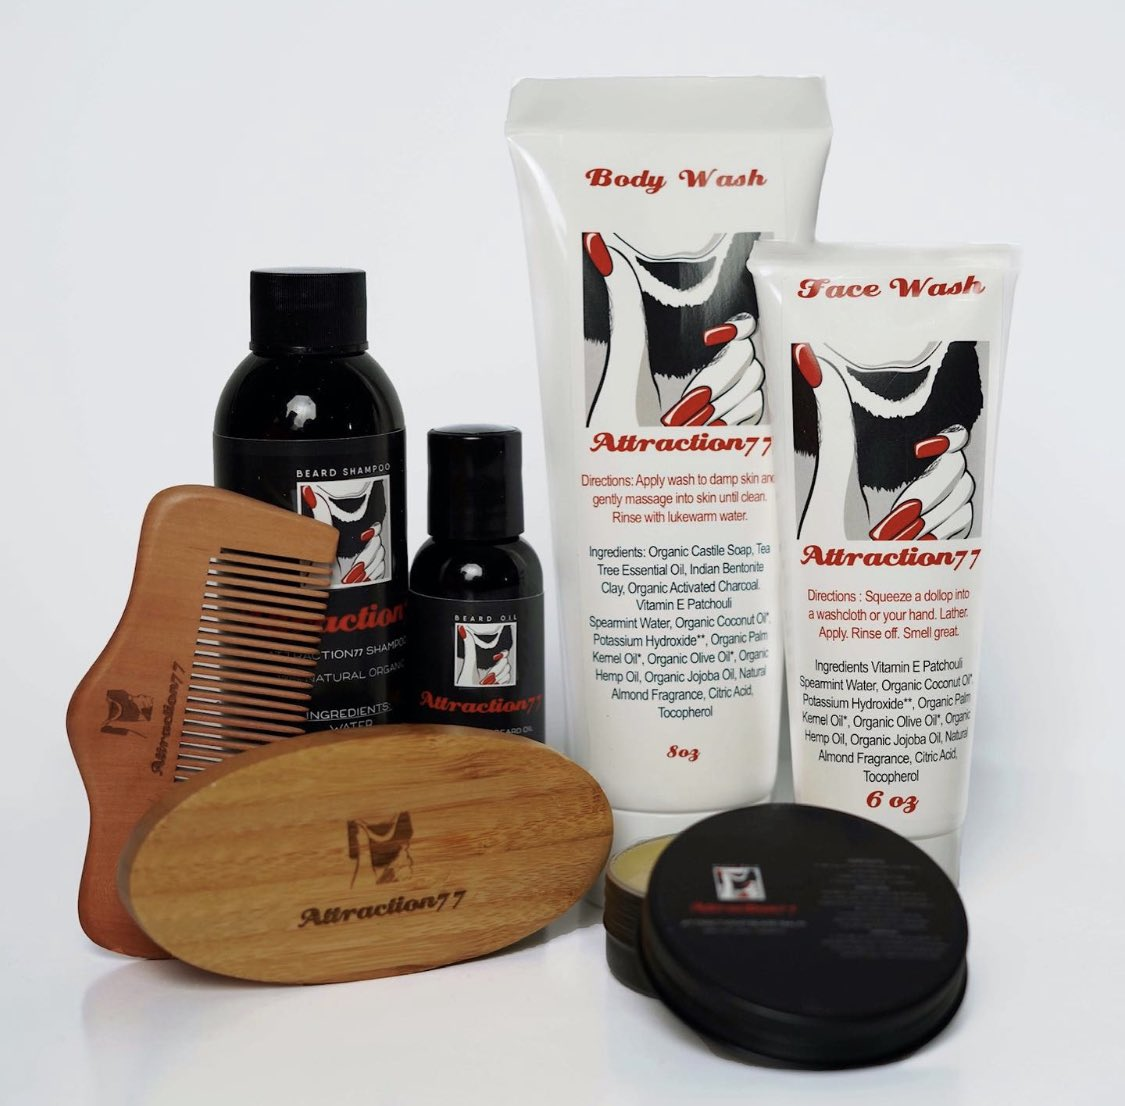 Happy Monday !!! We Love Our Reviews 😎 Which Beard Kit Is Your Favorite ? Visit https://t.co/85qnPmIzx3 & Pick Out Which Kit Fits You Best! Take 20% Off With The Promo Code BEARDCLUB & Enjoy Free Shipping On All Beard Kits 😁😁😁 https://t.co/8nWyHse7sg